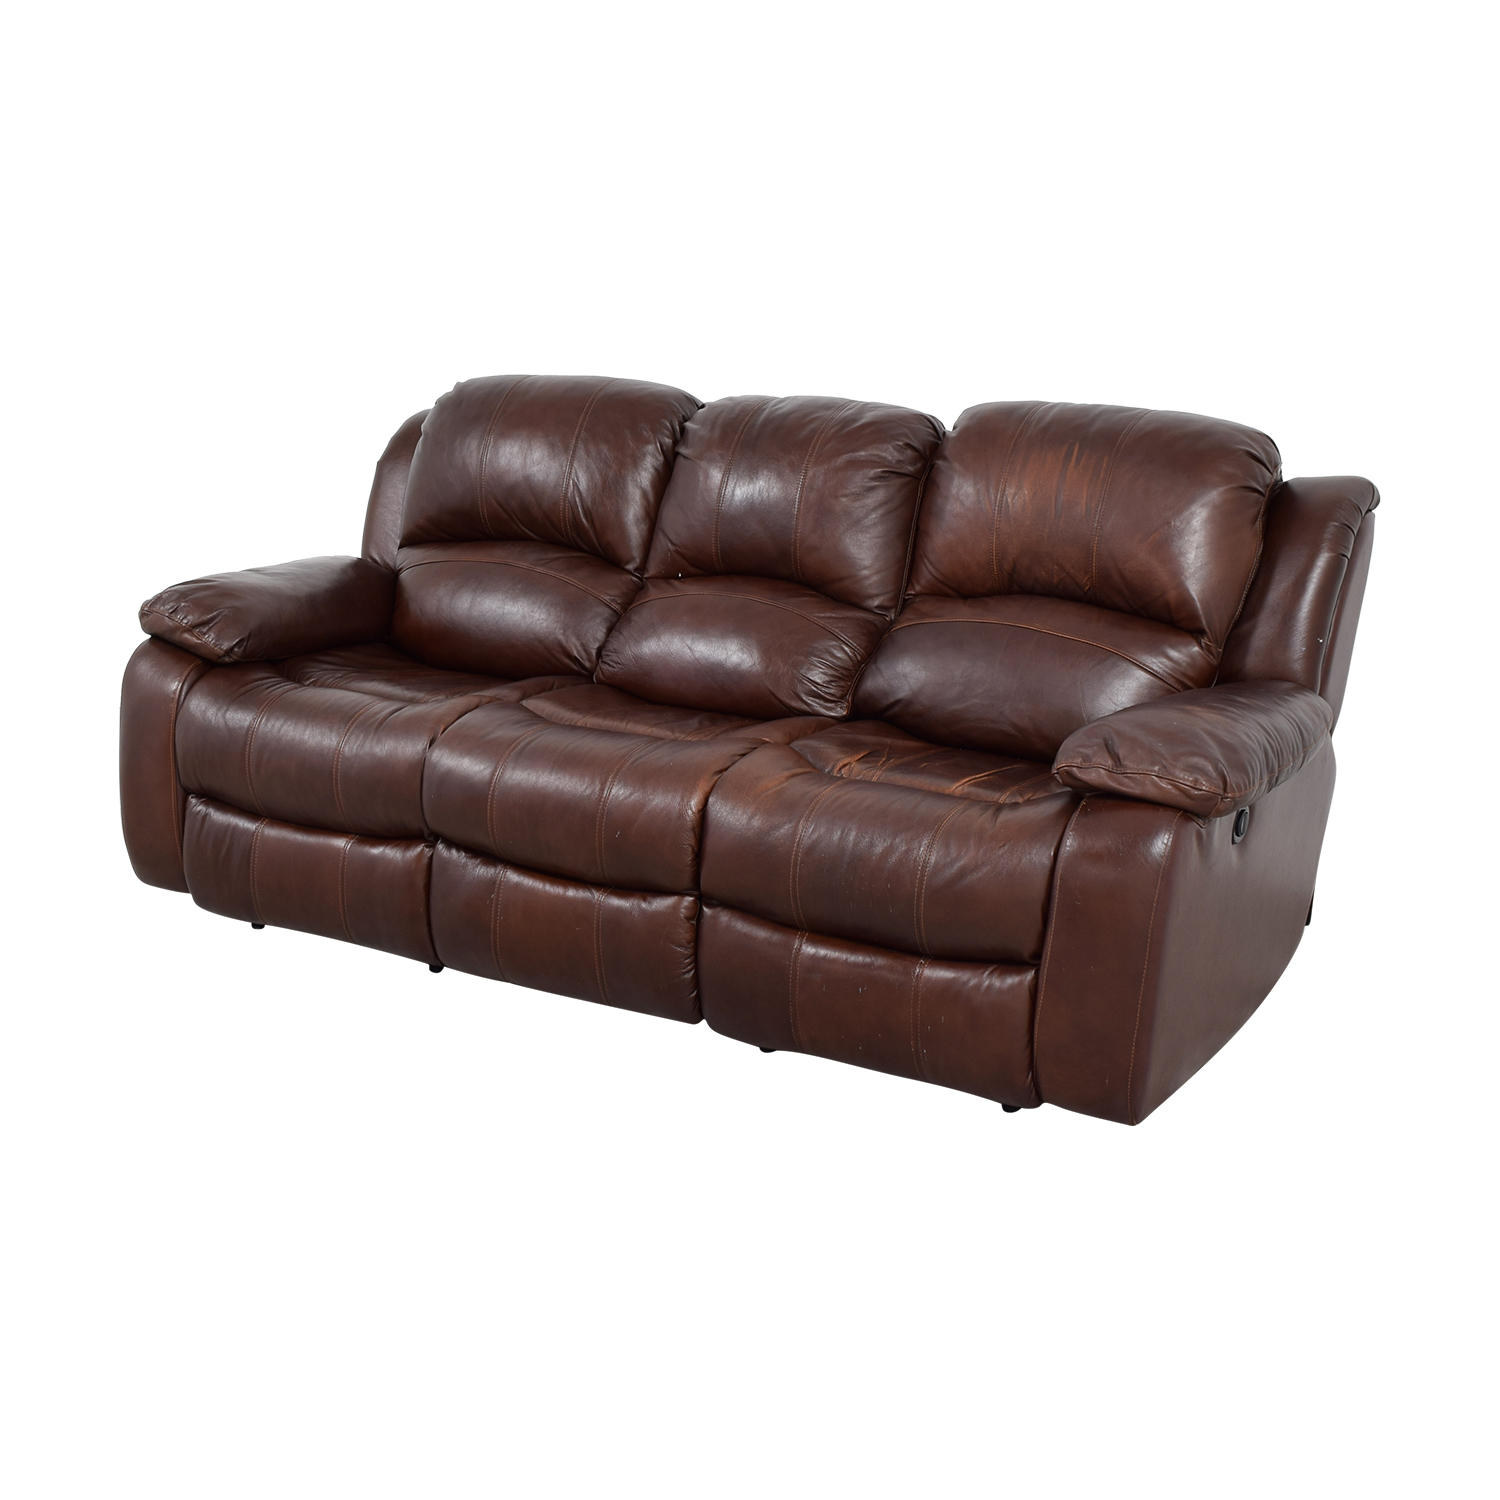 86 off raymour and flanigan raymour and flanigan brown leather reclining sofa chairs. Black Bedroom Furniture Sets. Home Design Ideas